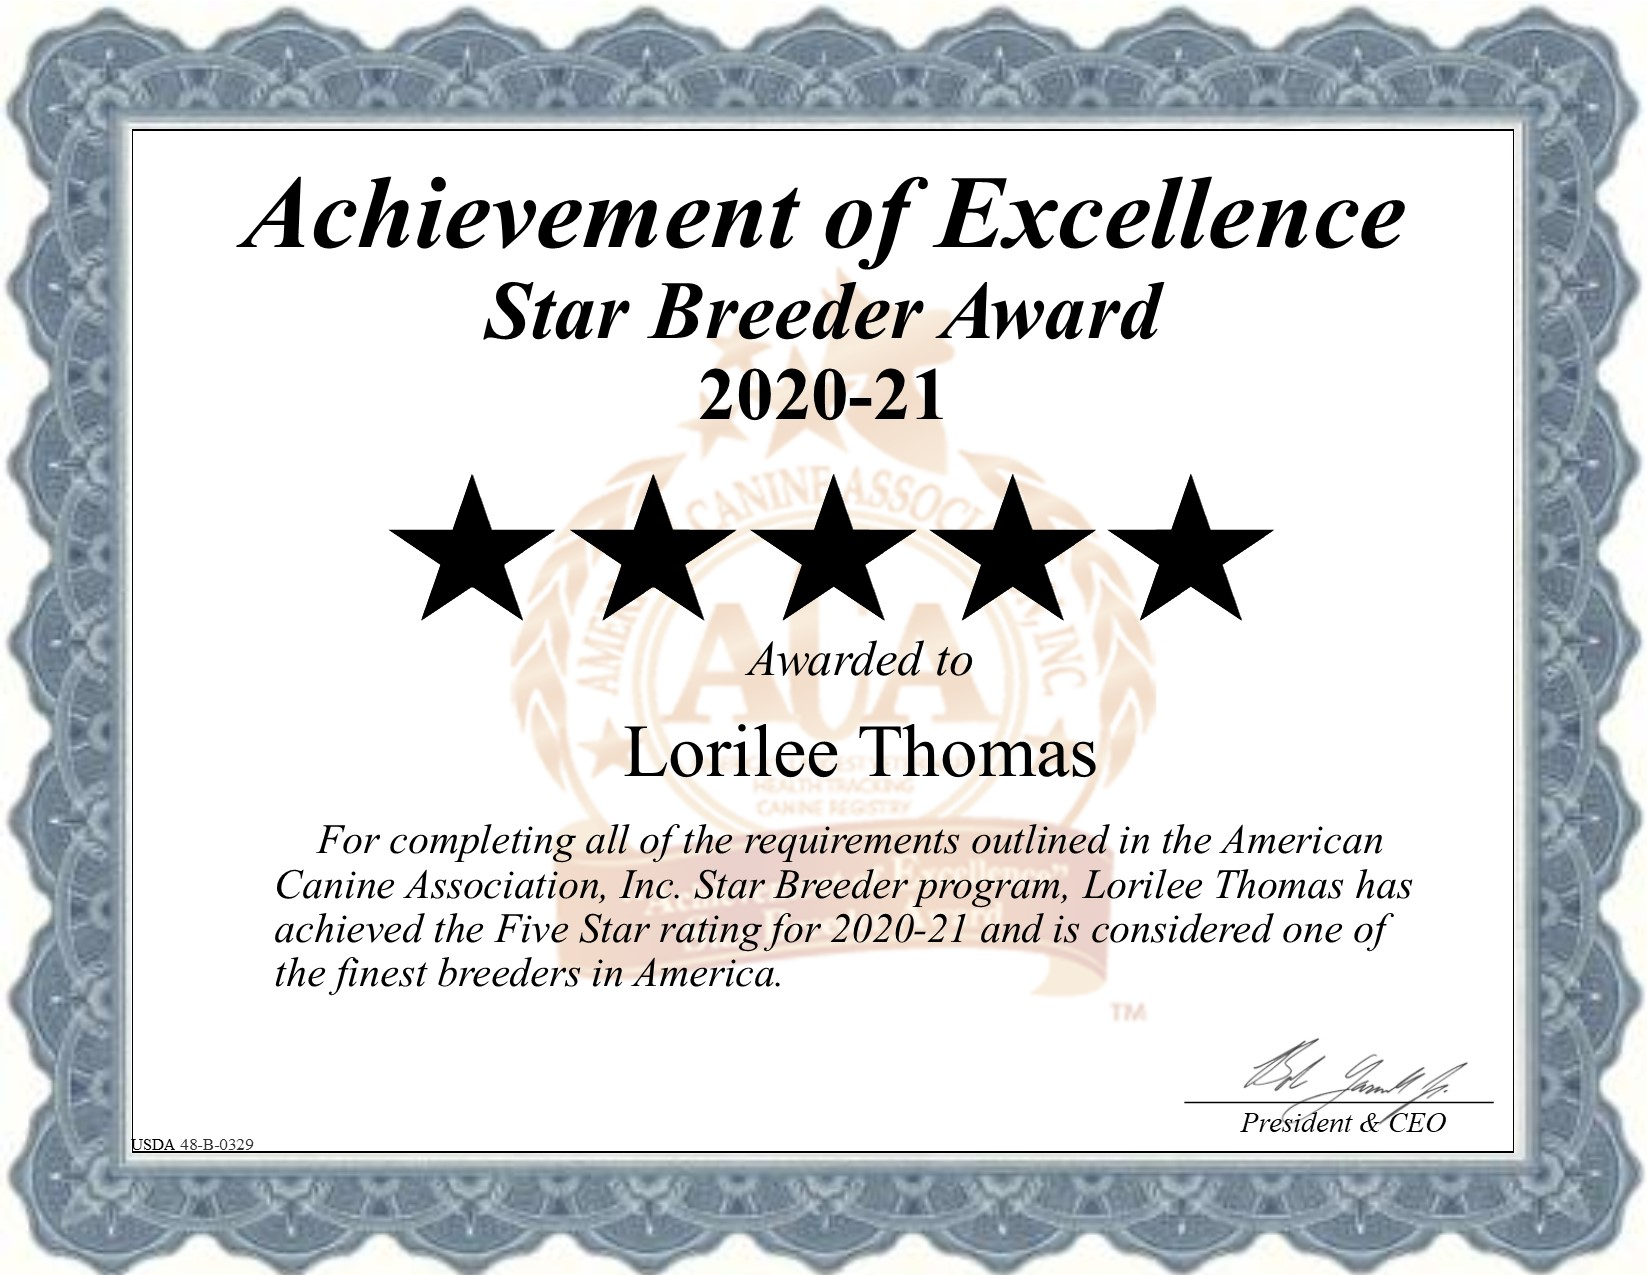 Lorilee thomas breeder, lorilee, thomas, dog, breeder, certificate, star-breeder, 5-star, USDA, lorilee-thomas, kansas, ks, whiting, puppy, puppies, ACA, USDA, 48-B-0329, report, inspection, requirement, customer, reviews,